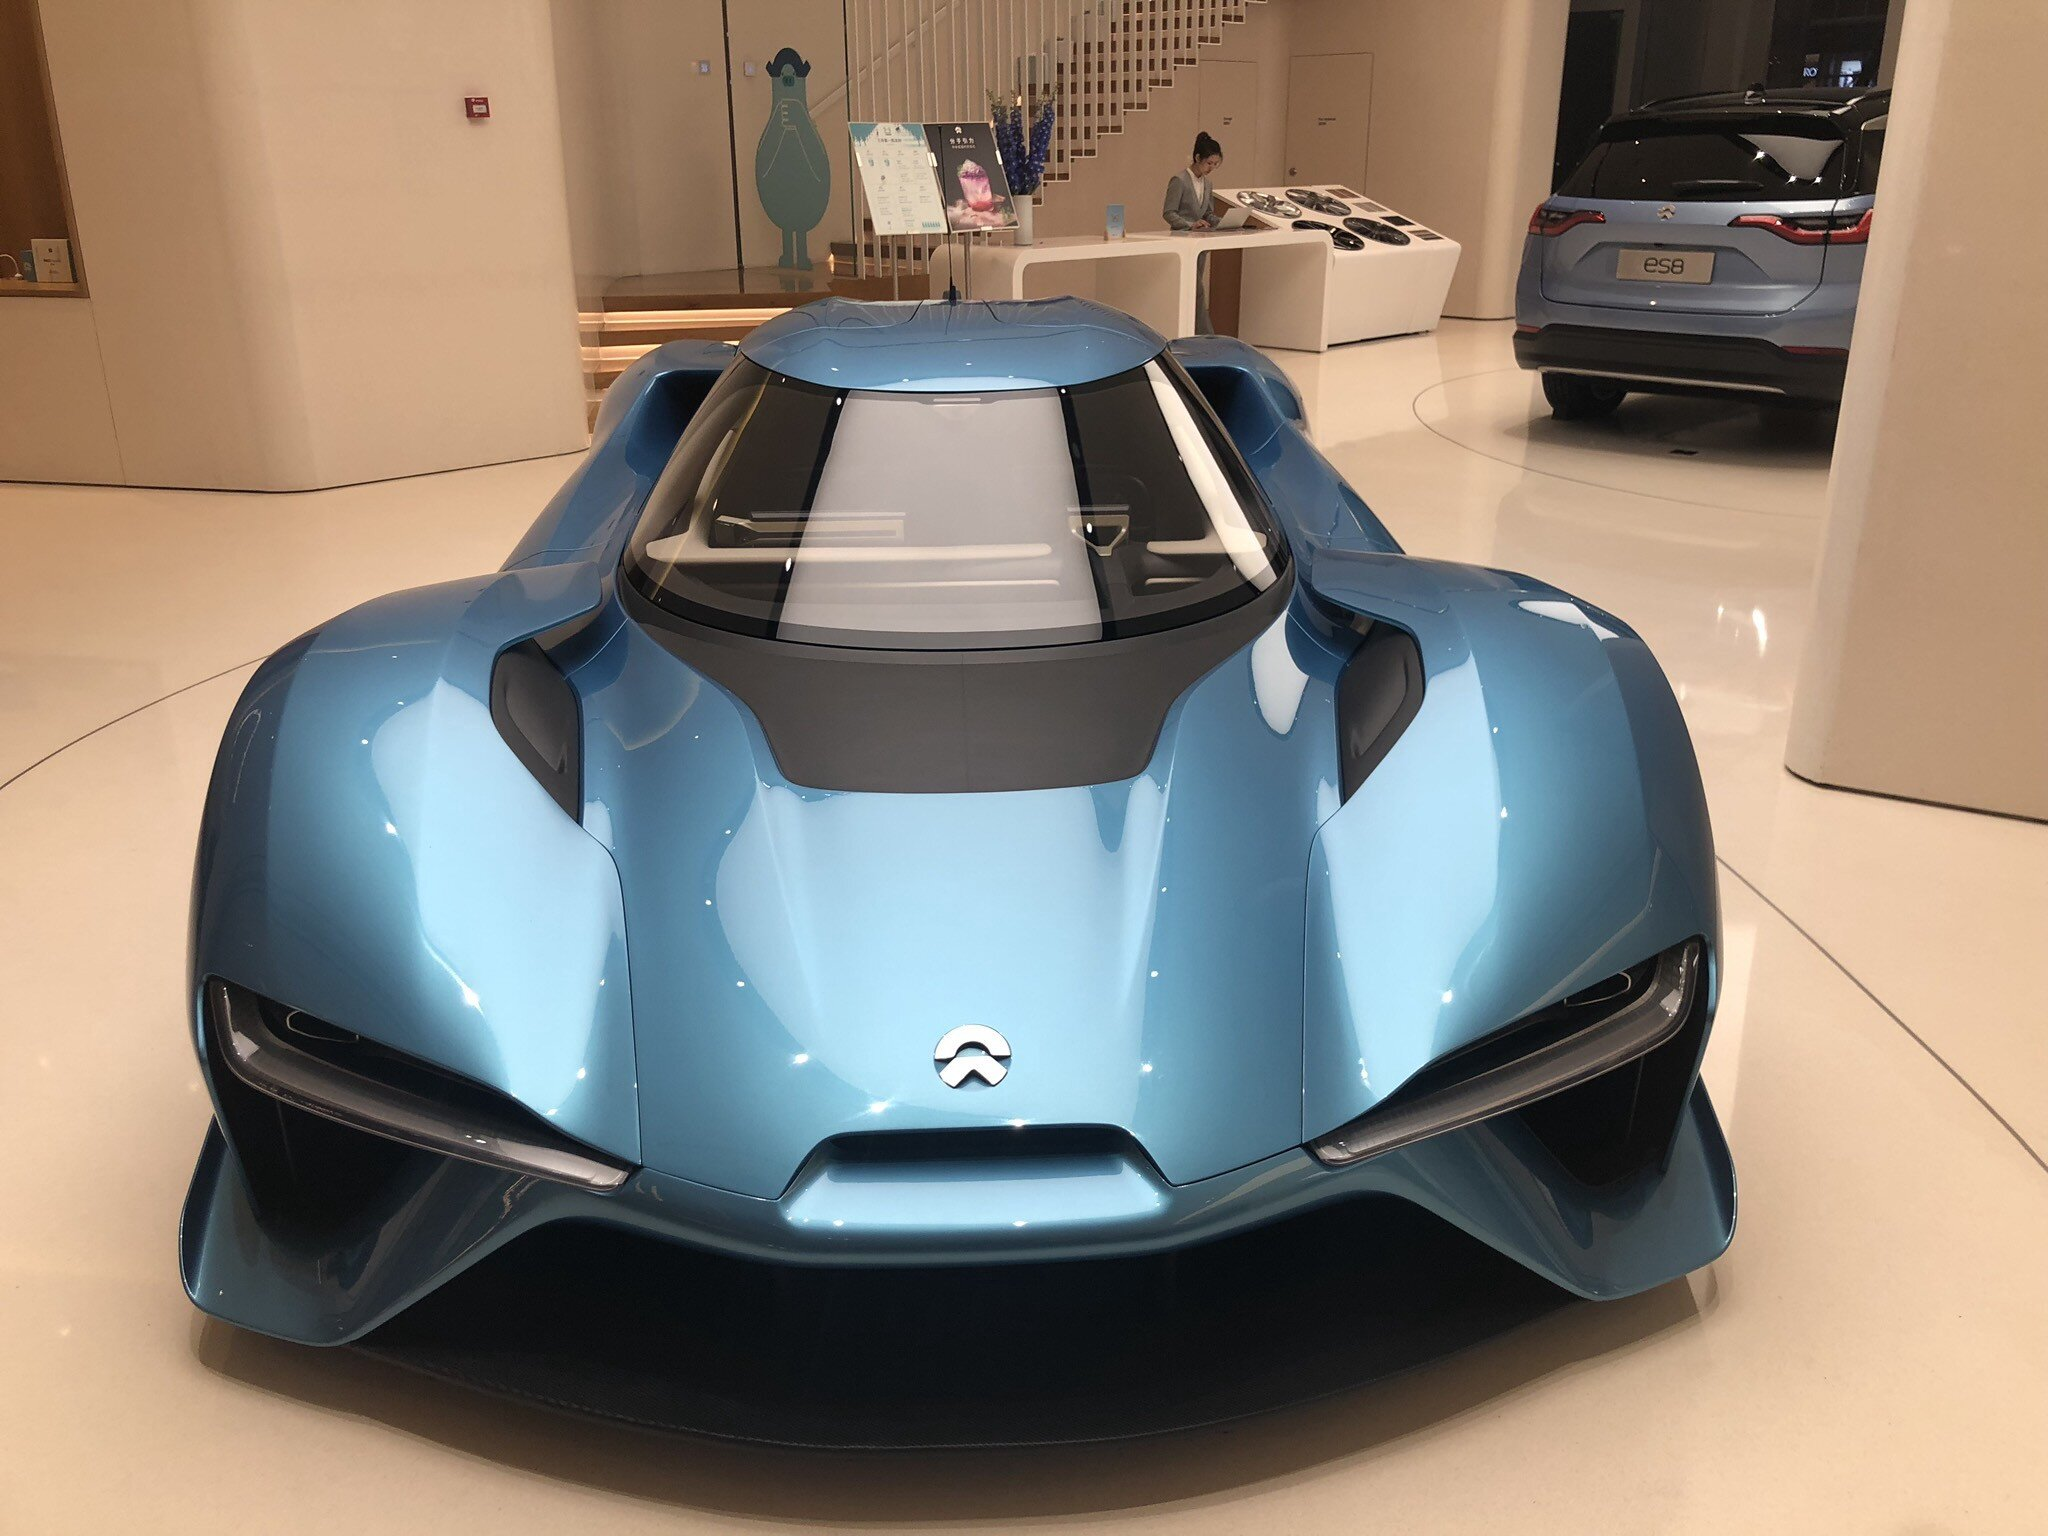 Visiting the NIO House in Shenzhen. Pictured in front is the EP9, the fastest EV supercar in the world, and the ES8 SUV in the background.